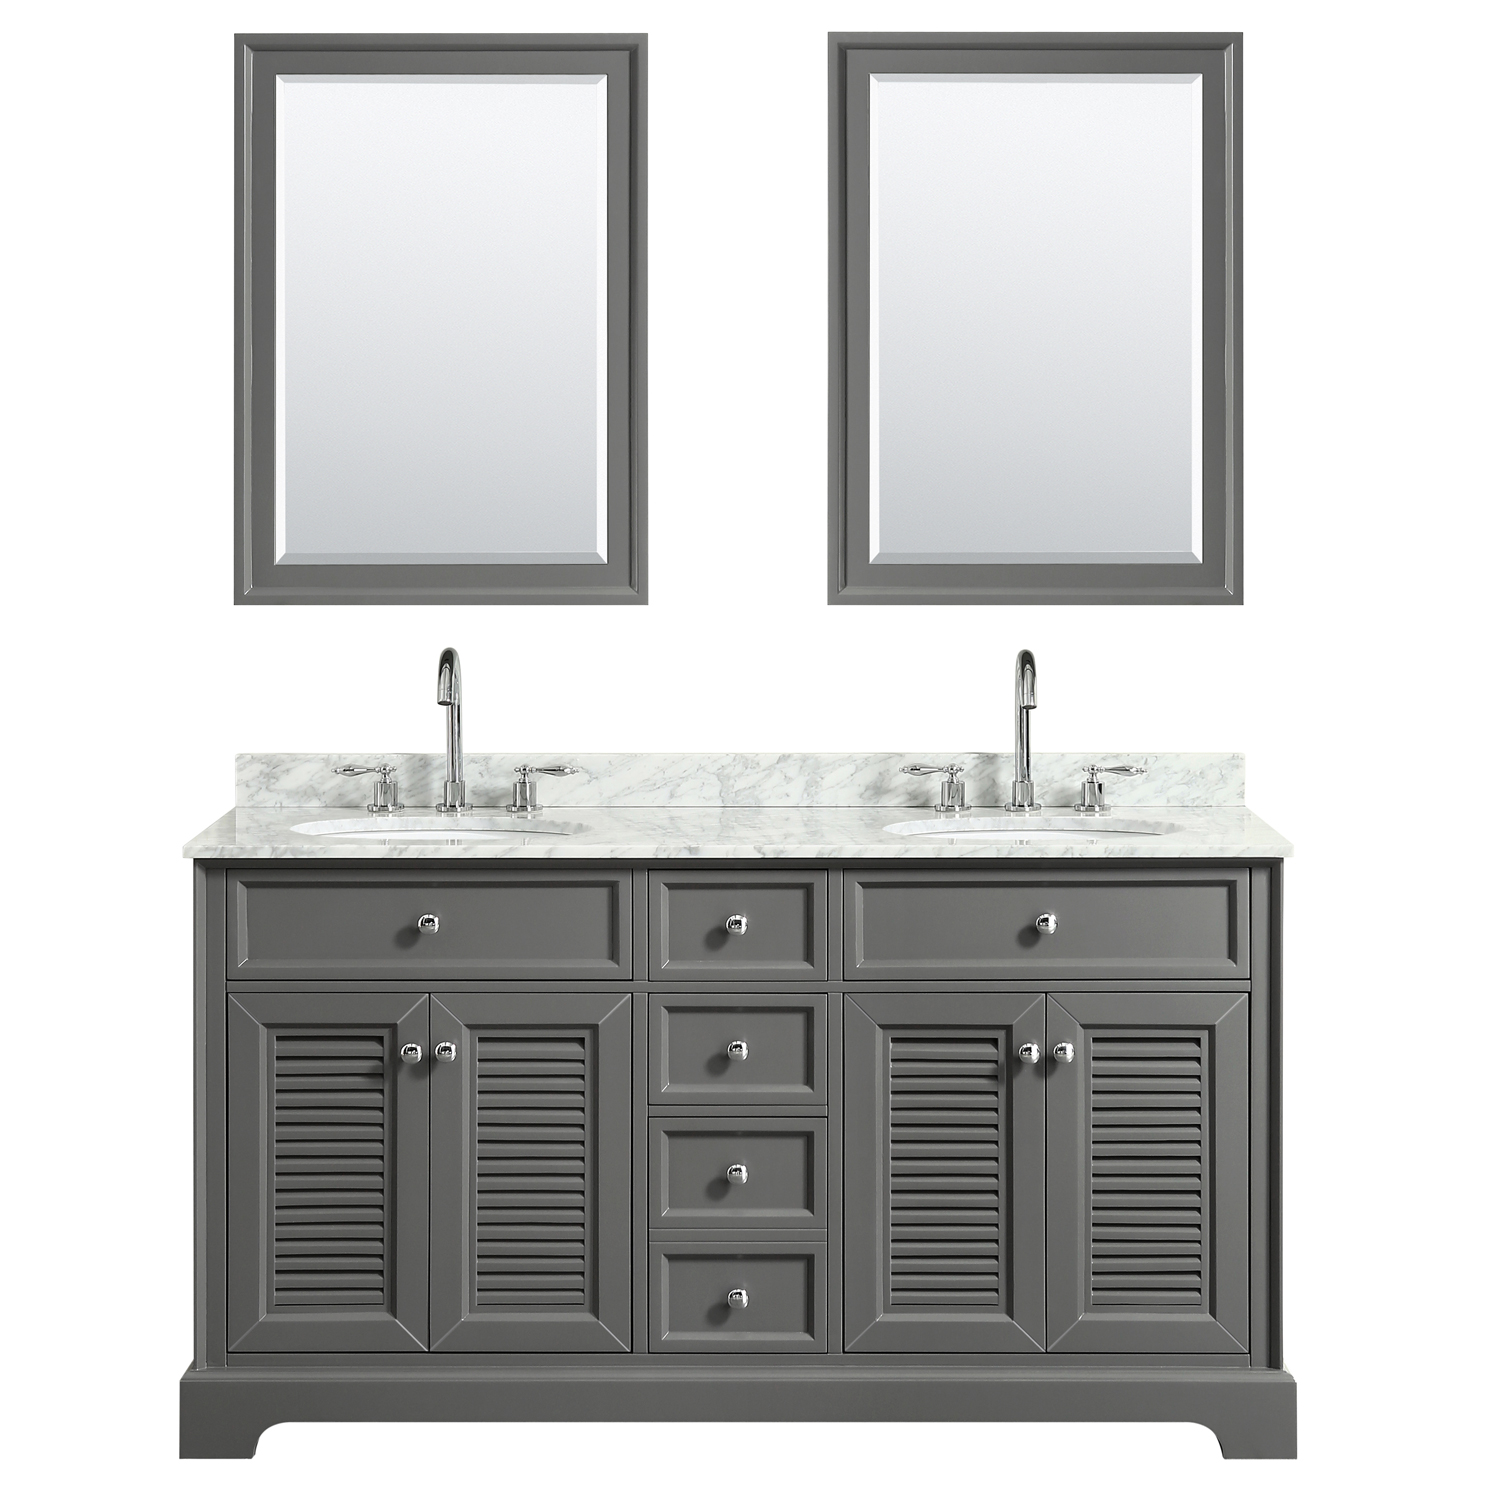 "60"" Double Bathroom Vanity in Dark Gray, White Carrara Marble Countertop, Undermount Oval Sinks, and Mirror Options"